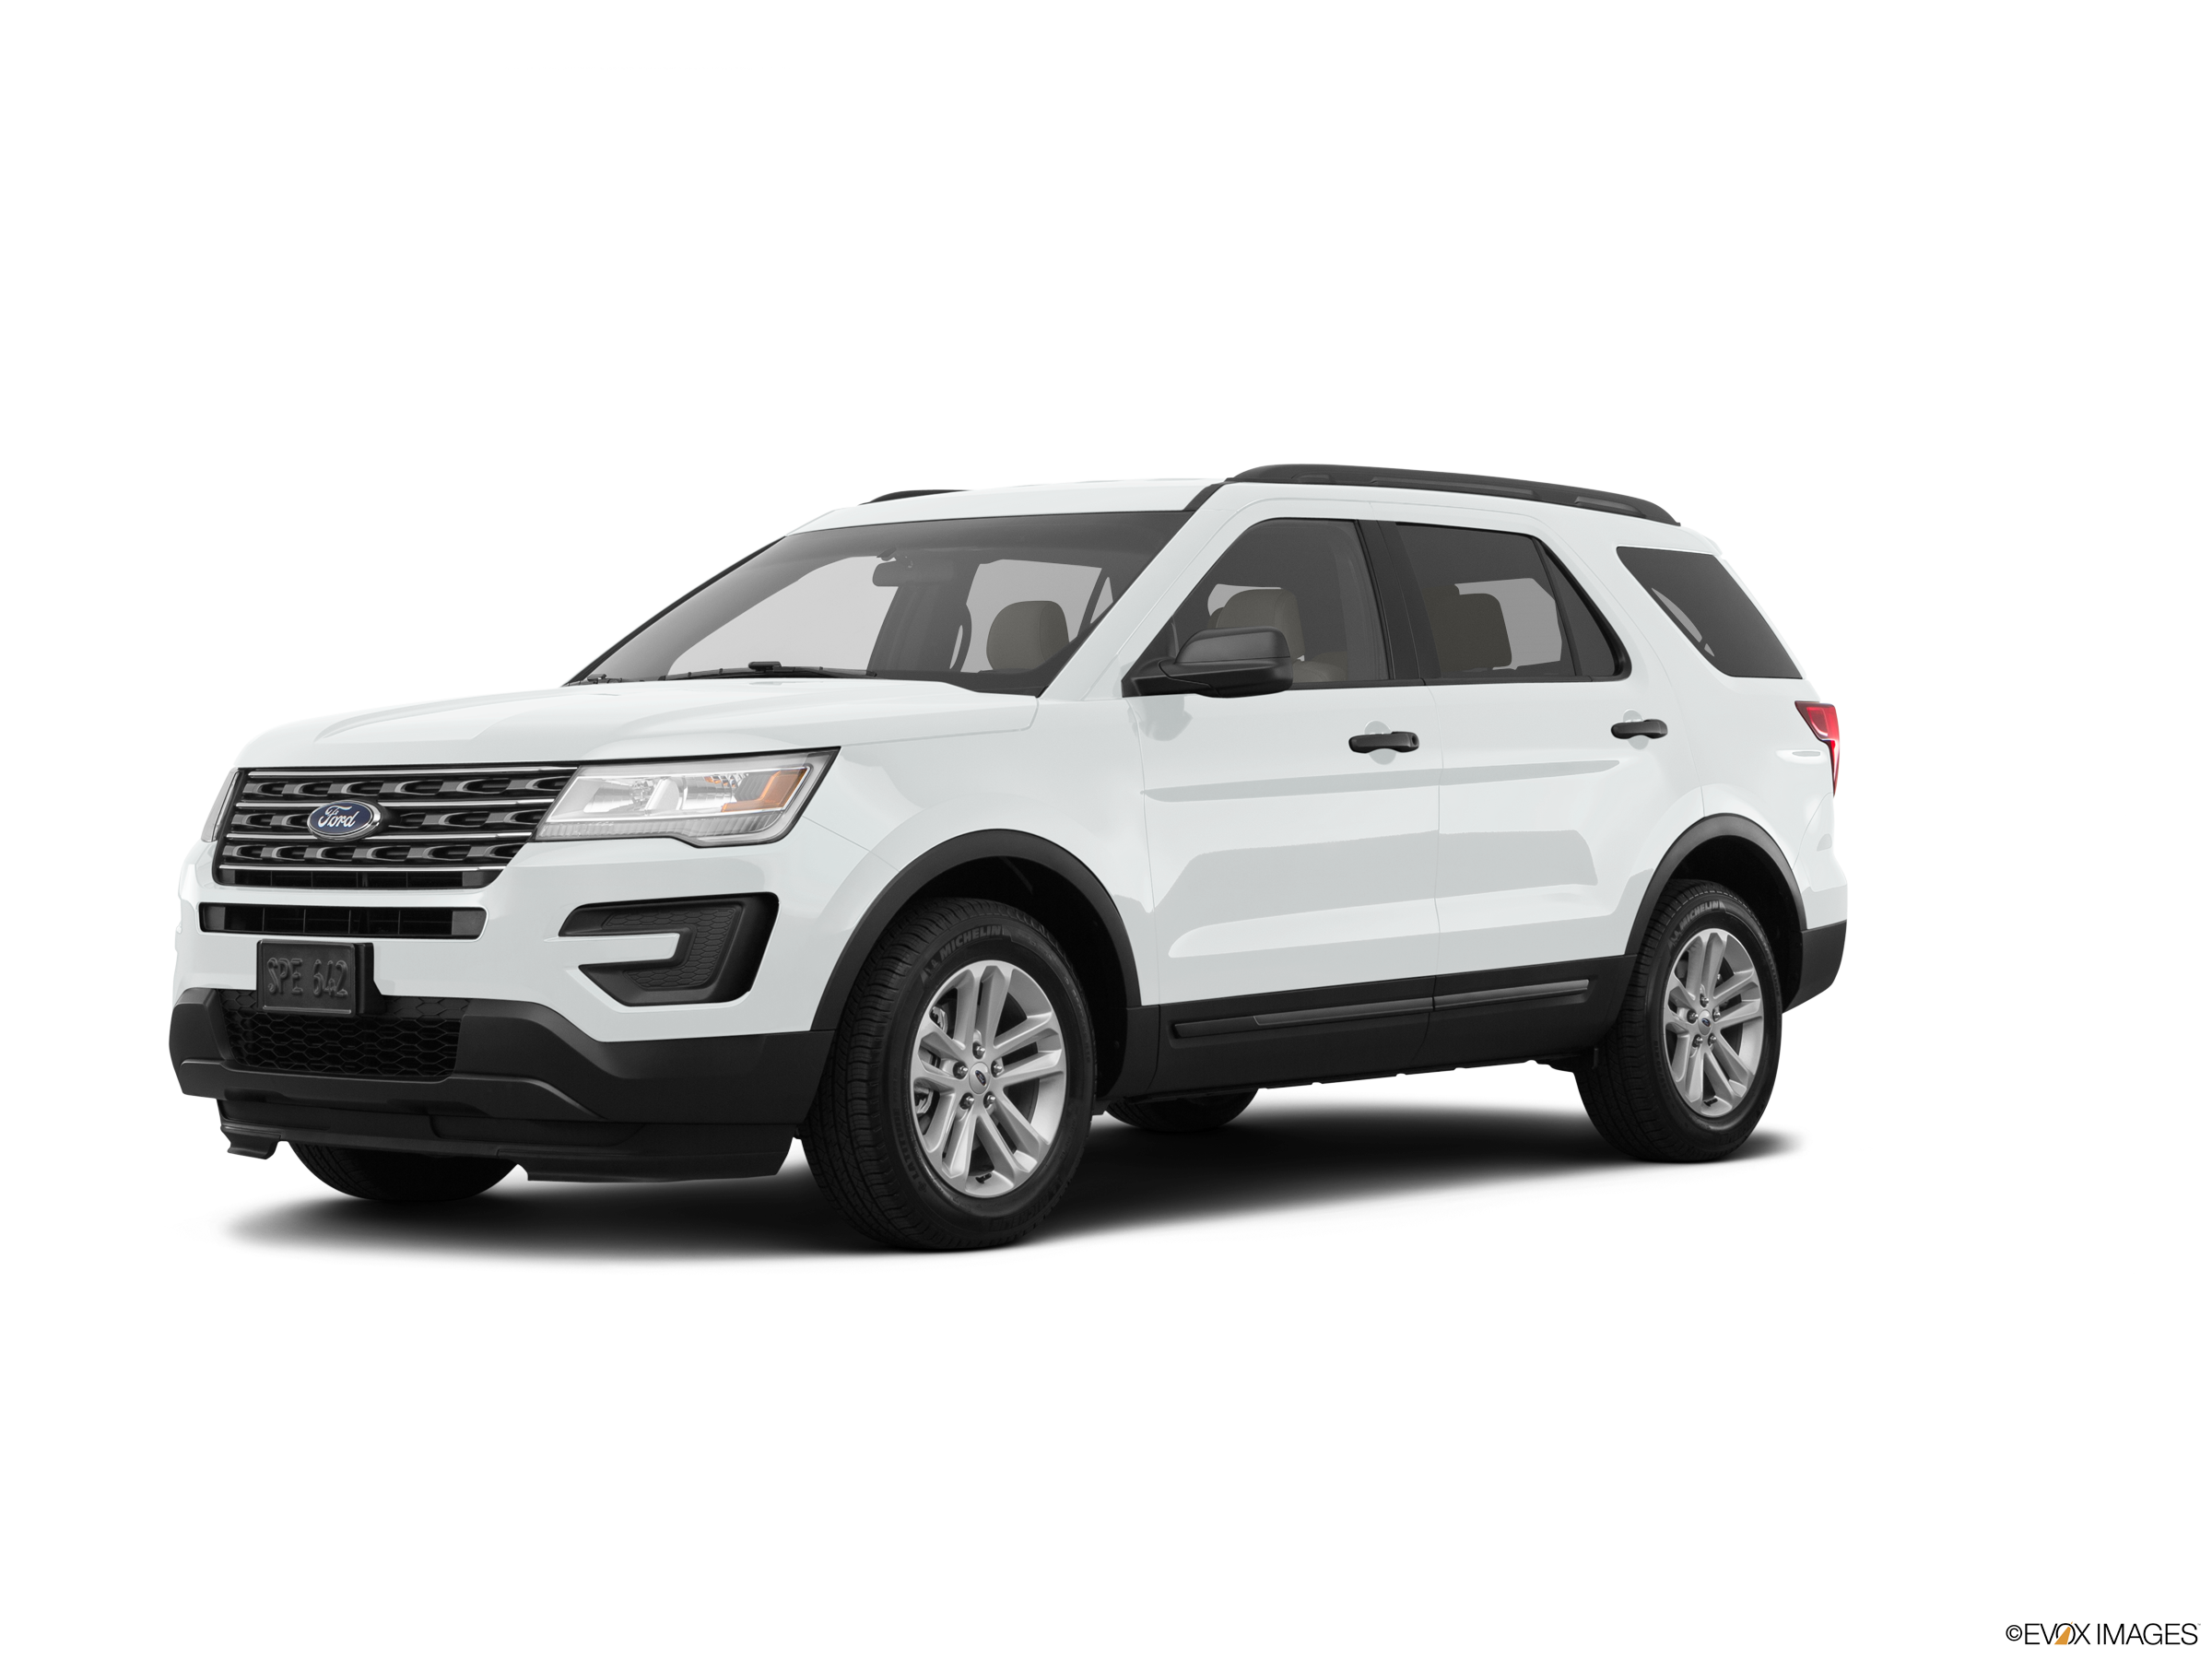 25 Best-Selling SUVs of 2018 - Ford Explorer